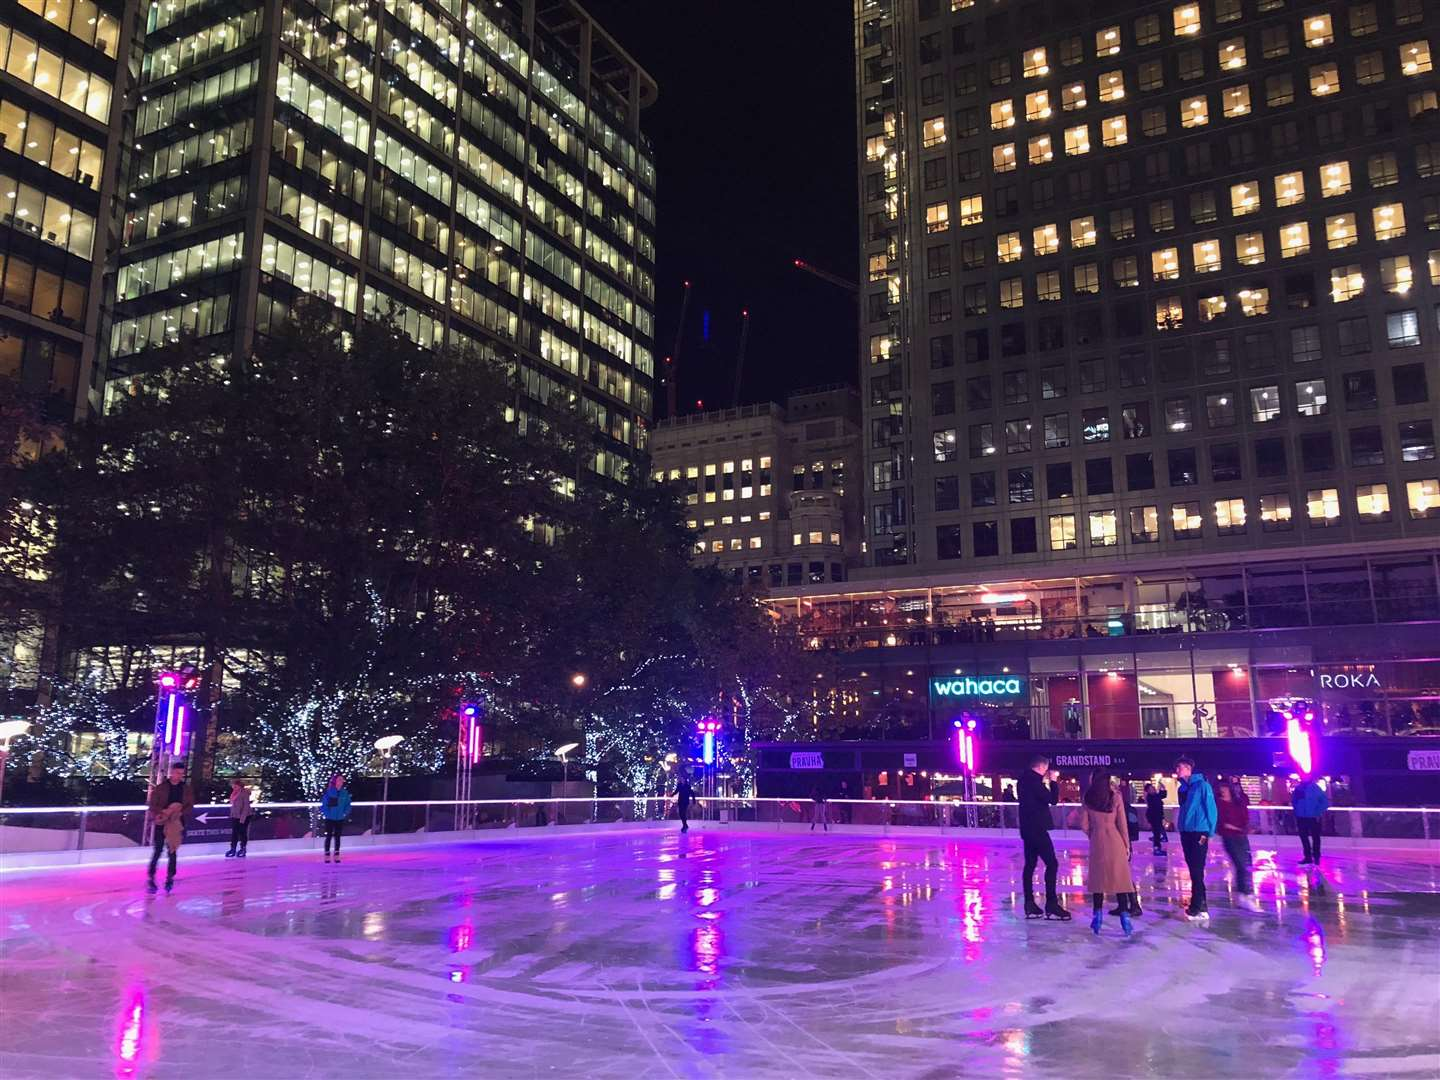 Canary Wharf Ice Rink gears up for Christmas (5185825)